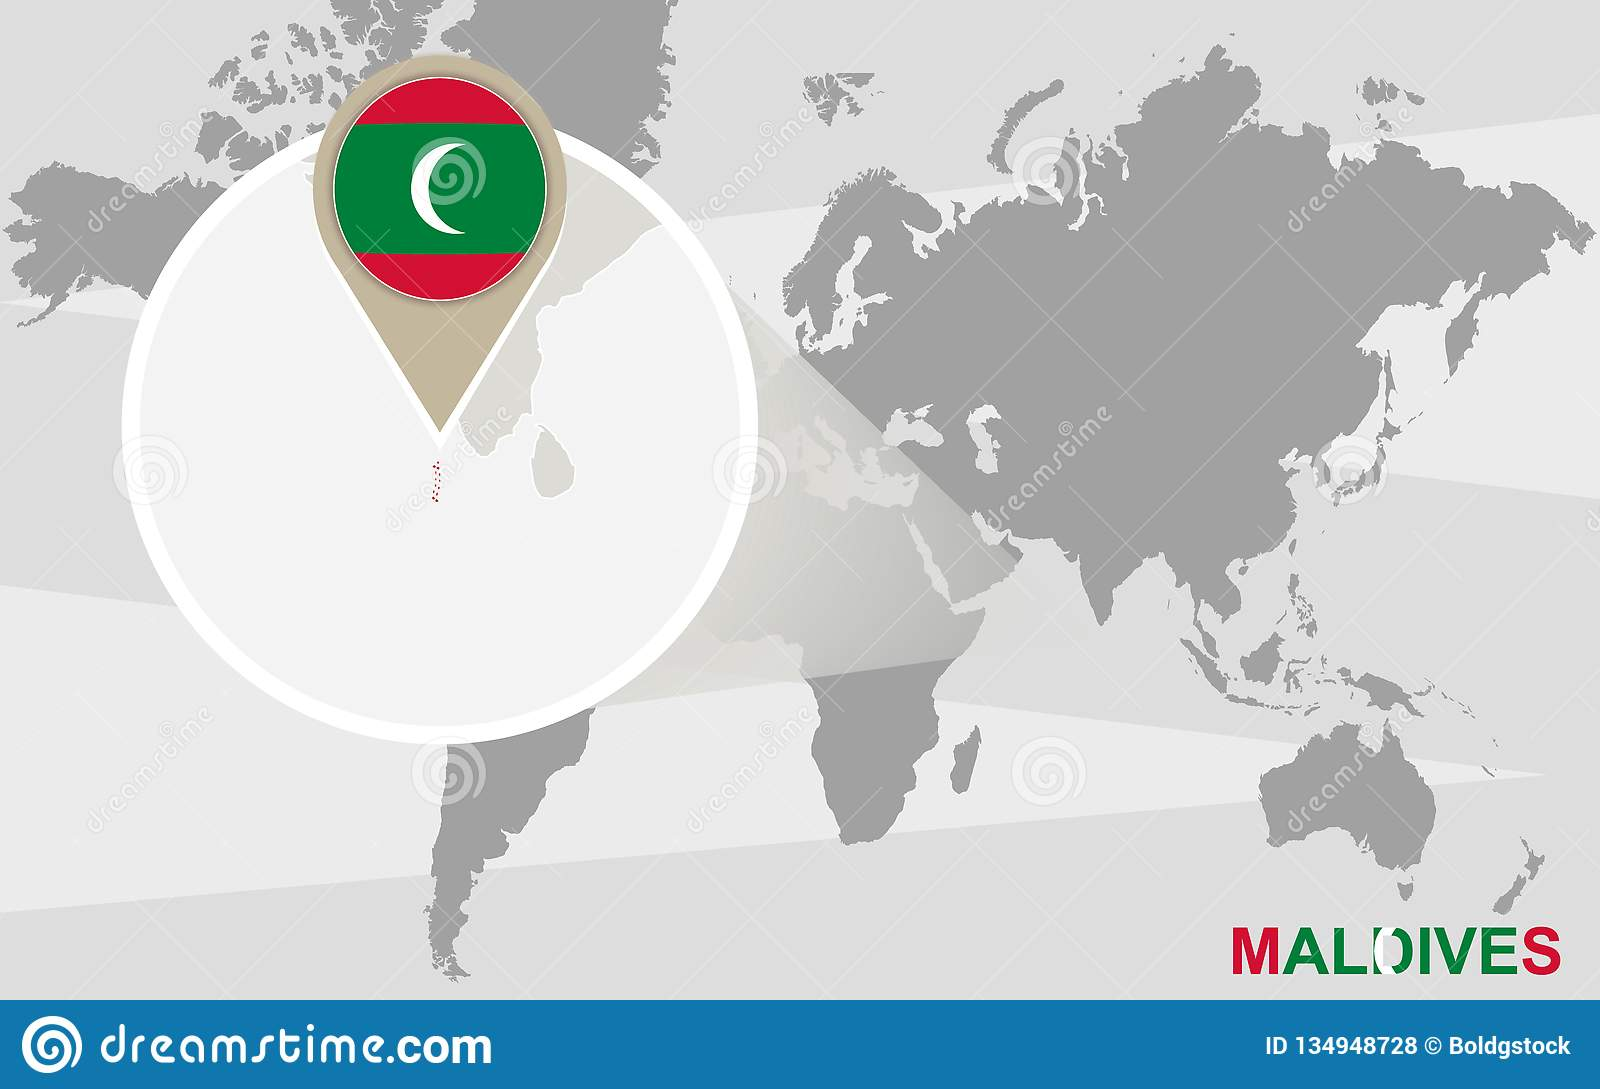 Maldives On A World Map.World Map With Magnified Maldives Stock Vector Illustration Of